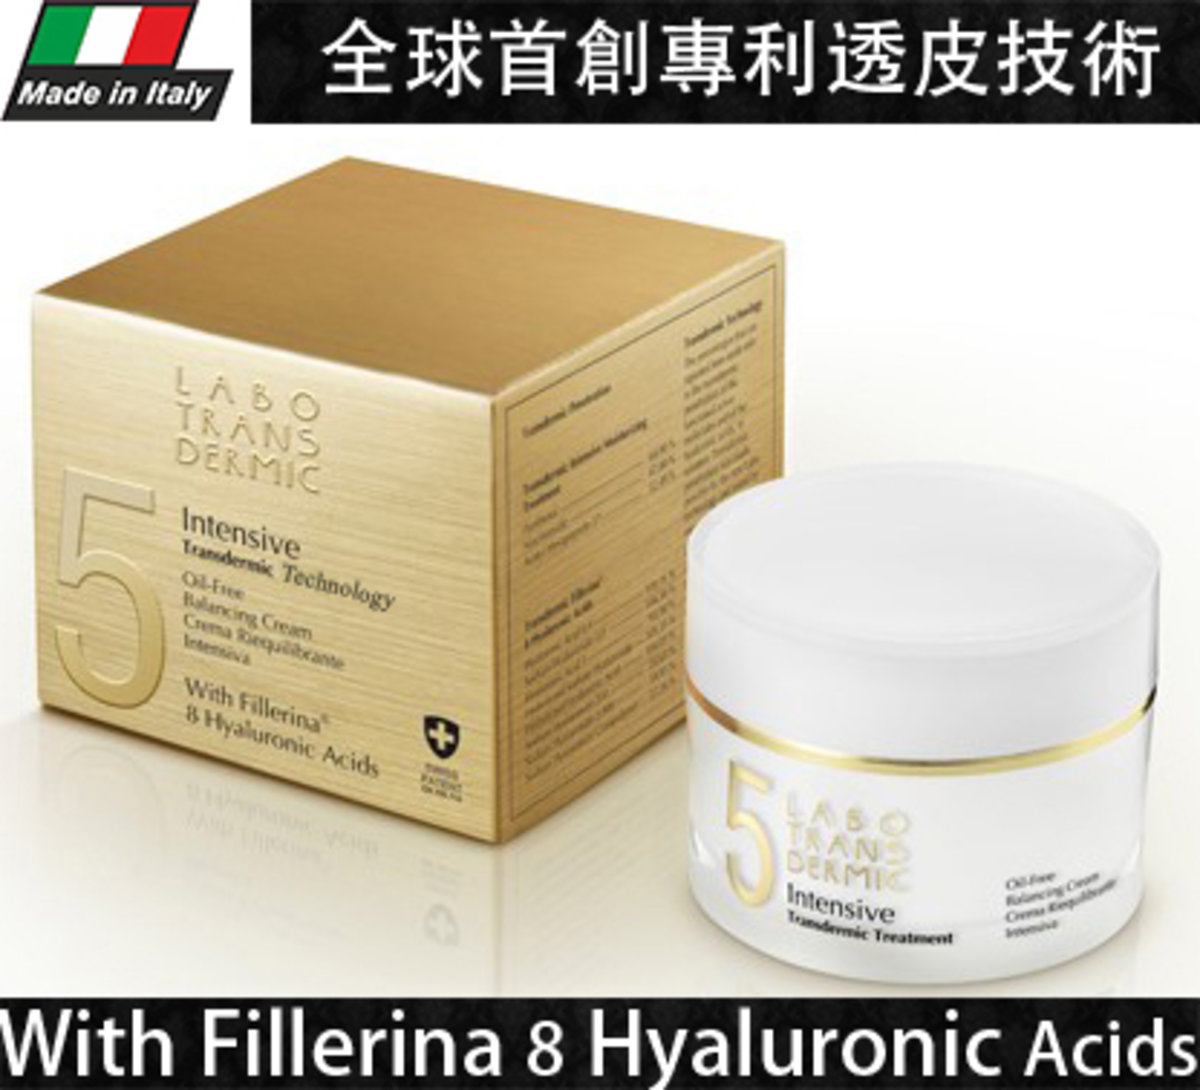 LABO TRANSDERMIC Oil-Free Balancing Cream 50ml (Parallel imported products)